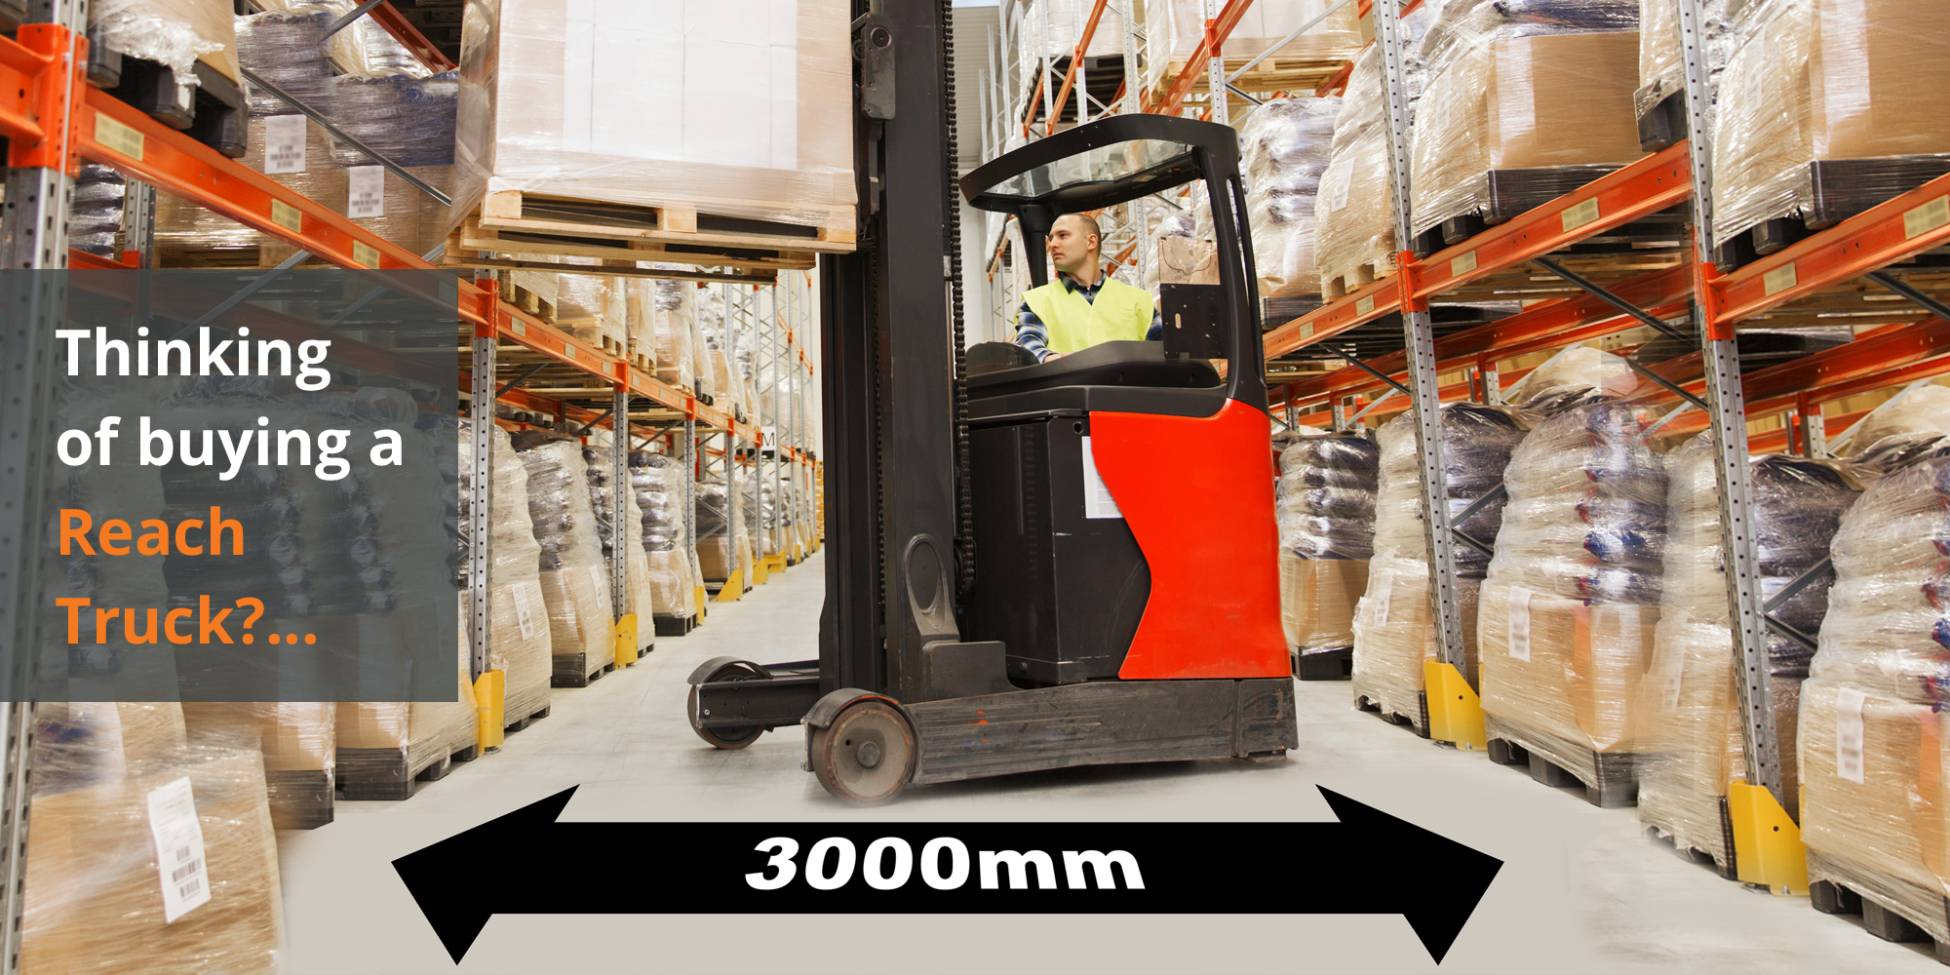 Thinking of buying a Reach Truck